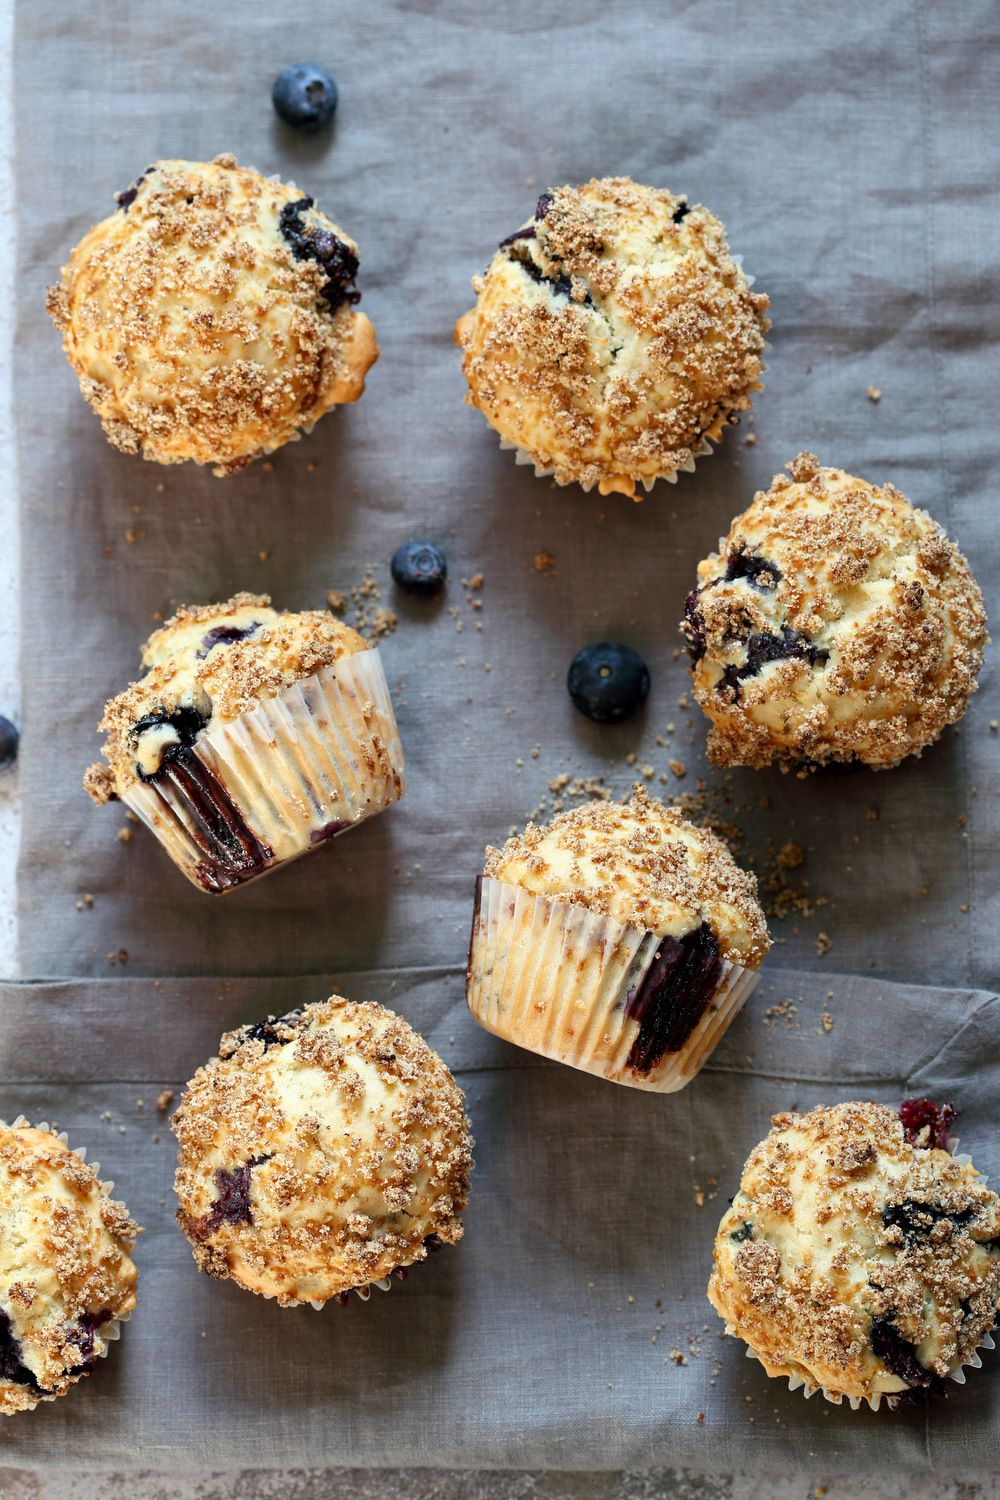 Vegan Blueberry Muffins with Streusel Easy Vegan Blueberry Muffins with Streusel. These Blueberry Streusel Muffins are soft , tall, and berrylicious. The batter needs just 1 Bowl. BlueberryMuffins Can be made without nuts, Gluten-free option